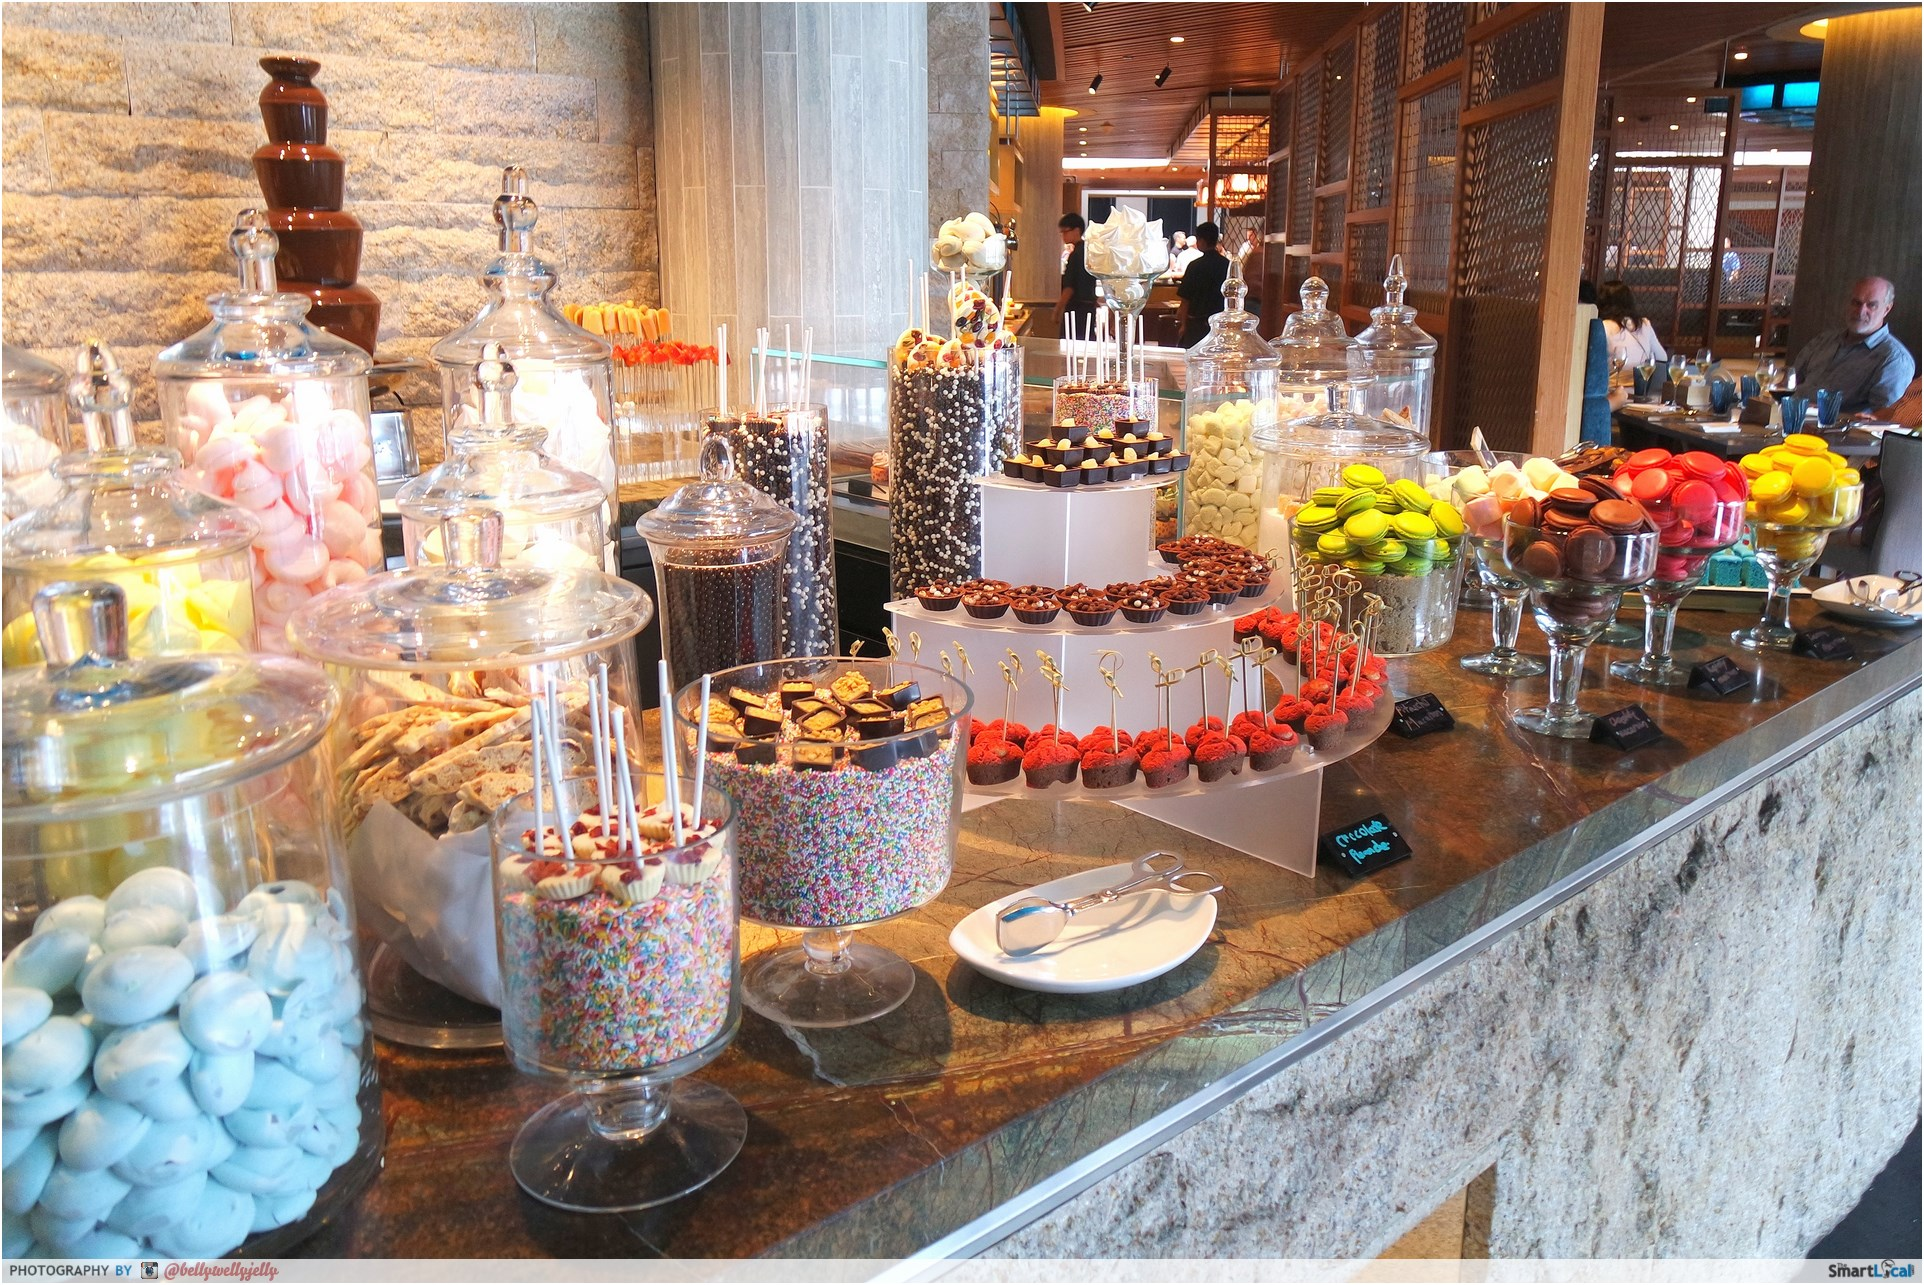 Duck Bay Marina >> 10 Best Hotel Buffets You Cannot Miss In 2015 - TheSmartLocal